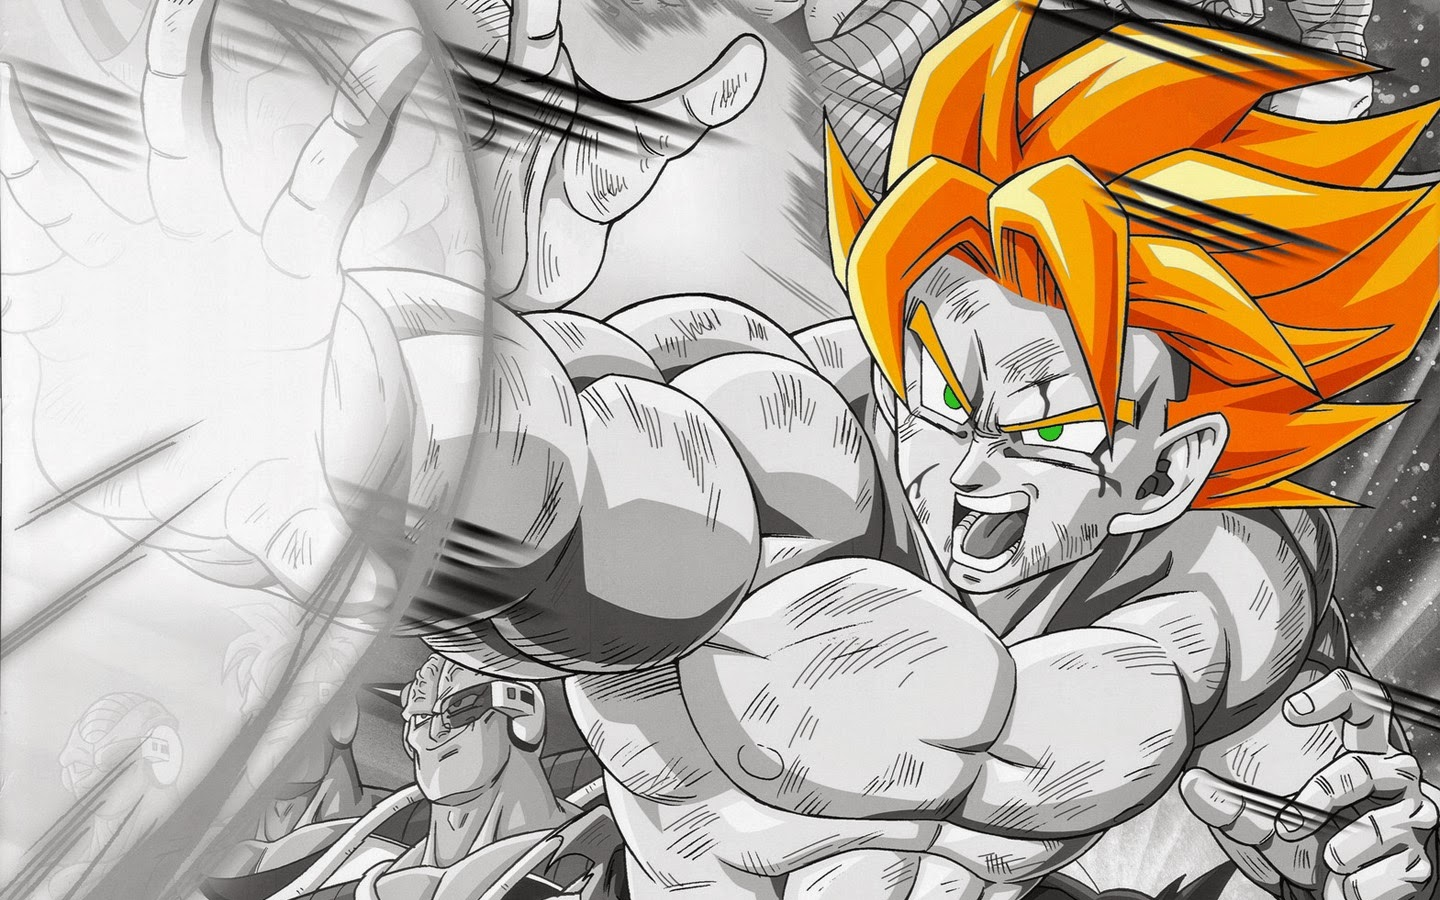 Pan Dbz Sexy Porno pictures dragon ball hardcore - adult archive